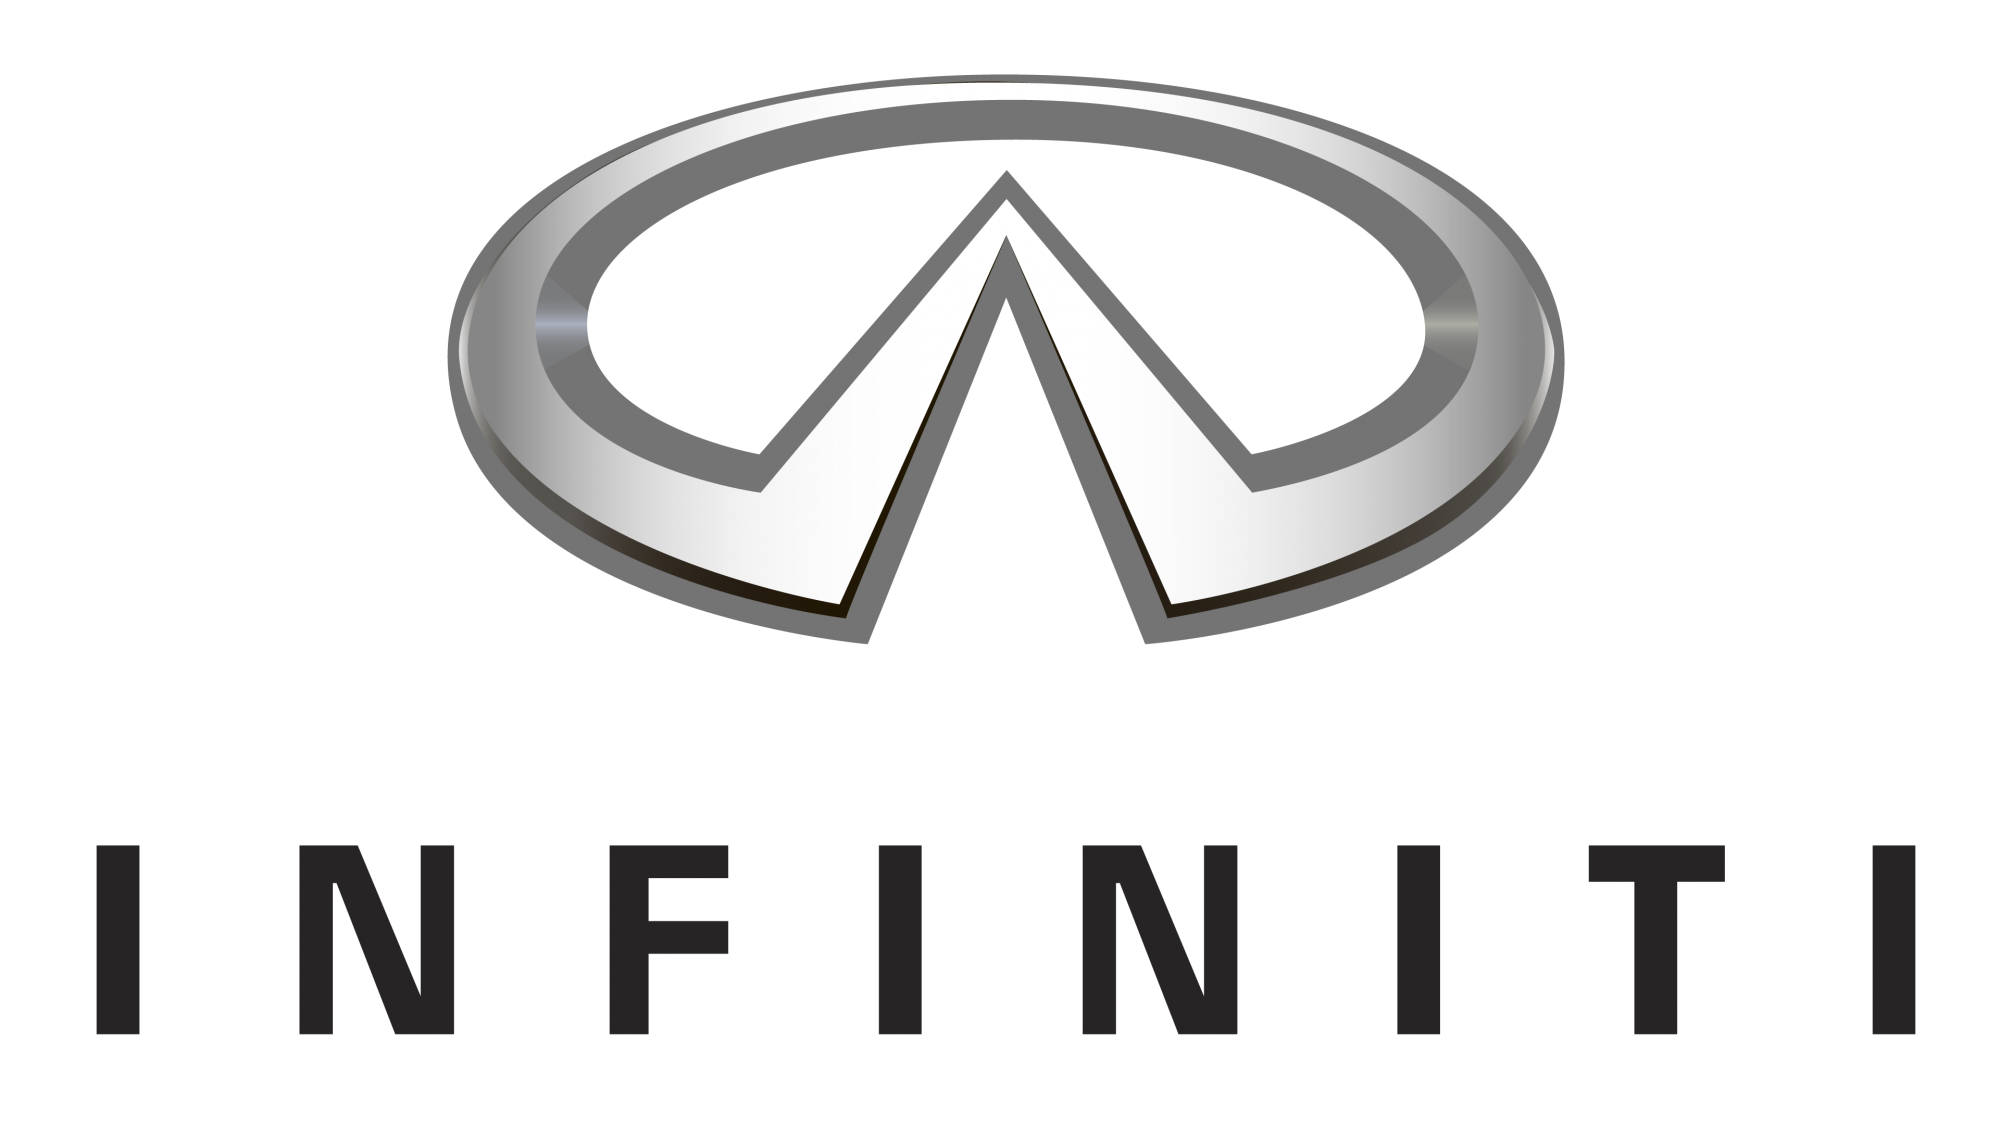 Infiniti aggiorna l'infotainment: Apple CarPlay e Android Auto entro il 2020 thumbnail